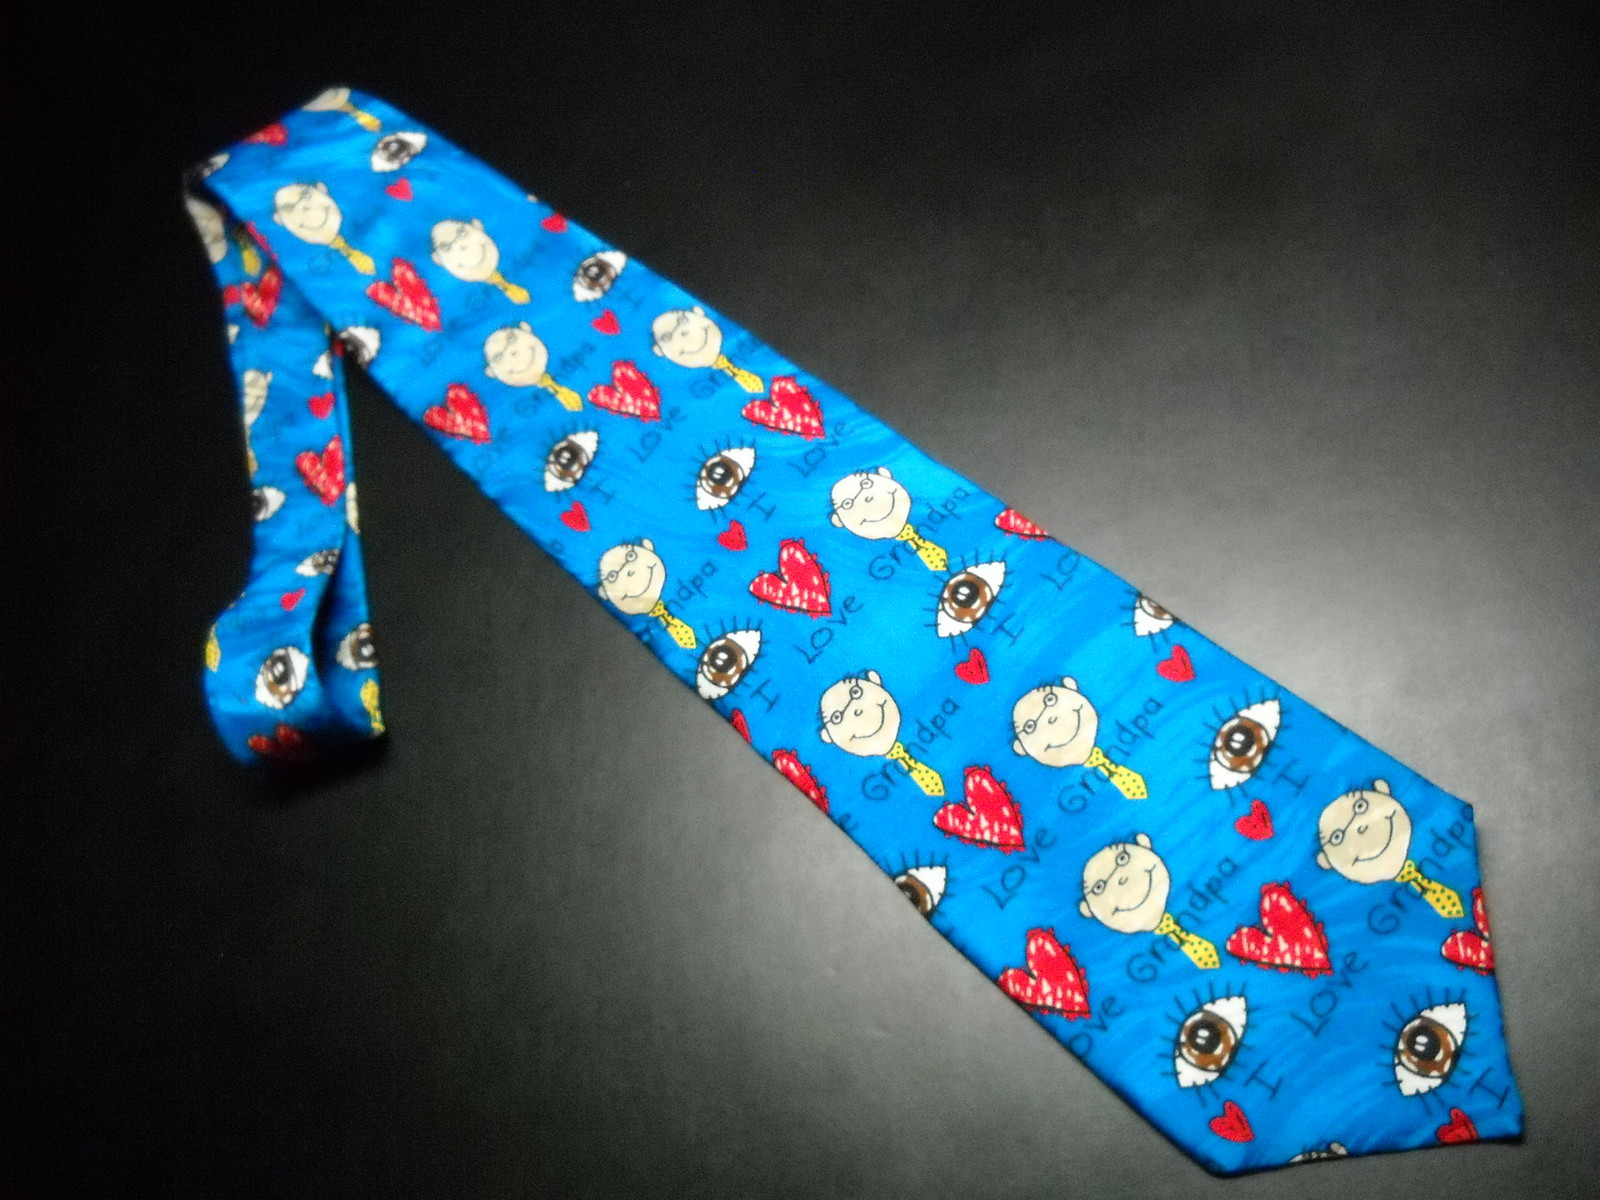 Ralph Marlin RM Style Neck Tie I Love Grandpa Repeat Bright Blues Hearts Grandpa image 2